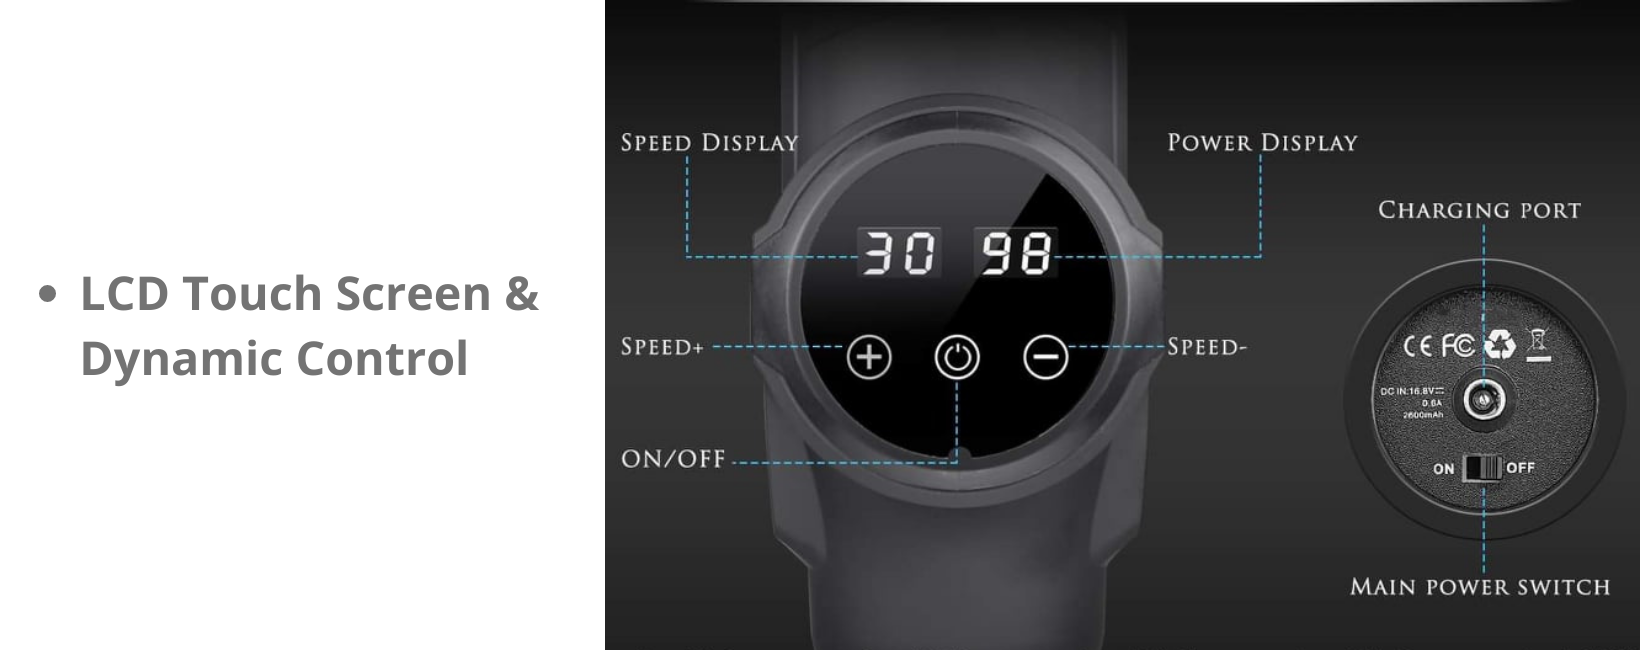 LCD Touch Screen & Dynamic Control: Know your current speed and monitor applied pressure at a glance, our bright and responsive touch screen display is easy to clean and more durable than physical gear displays.